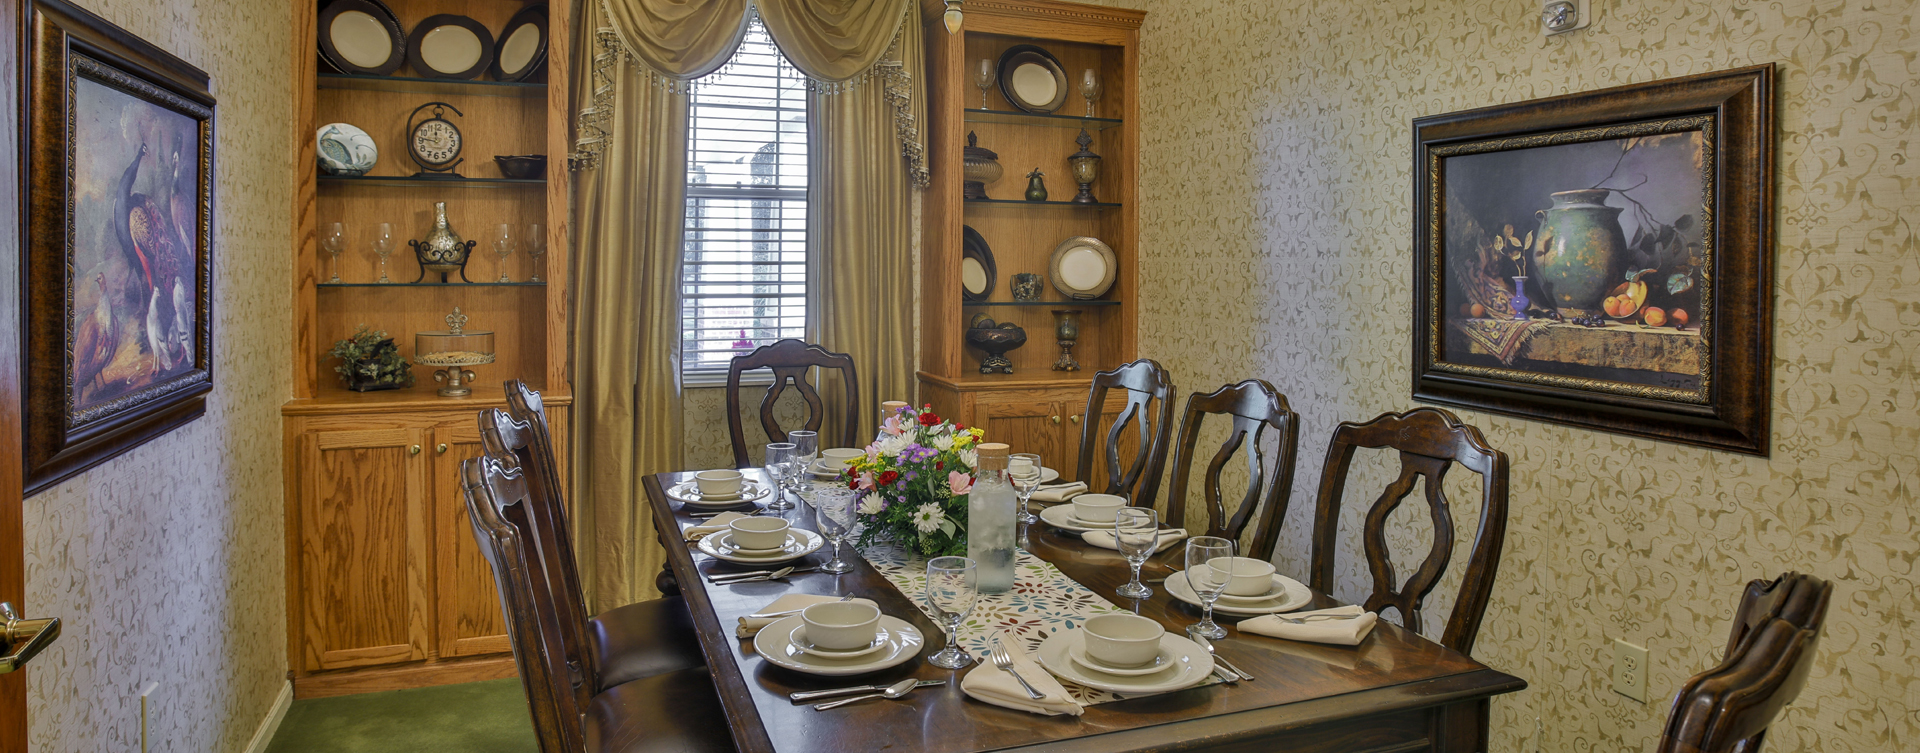 Celebrate special occasions in the private dining room at Bickford of Crawfordsville